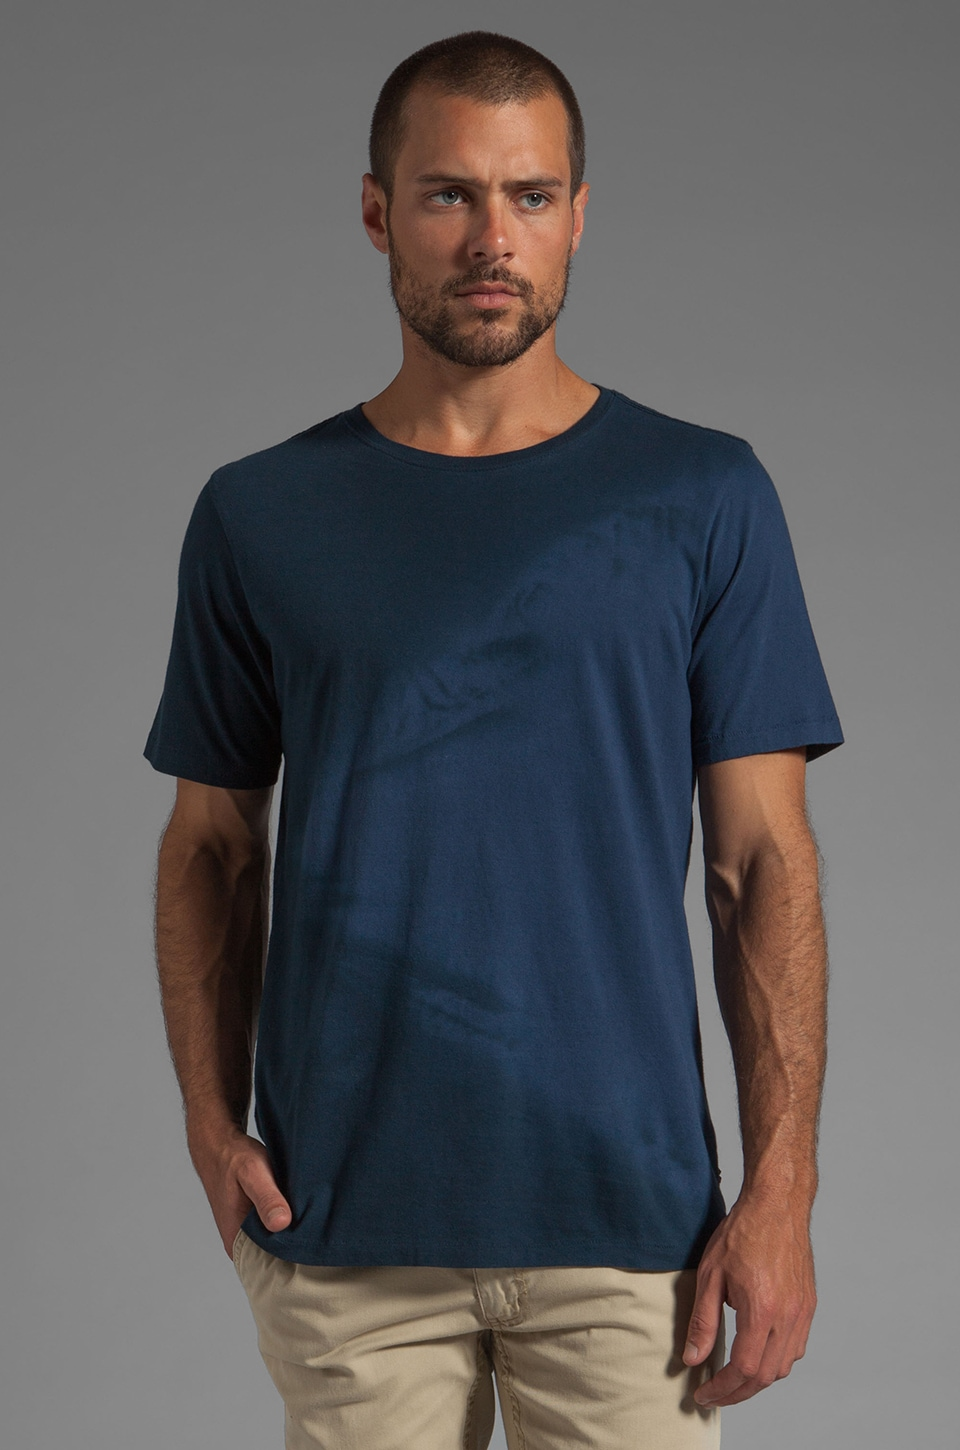 V.S.T.R Enisgn Tee in Ensign Blue